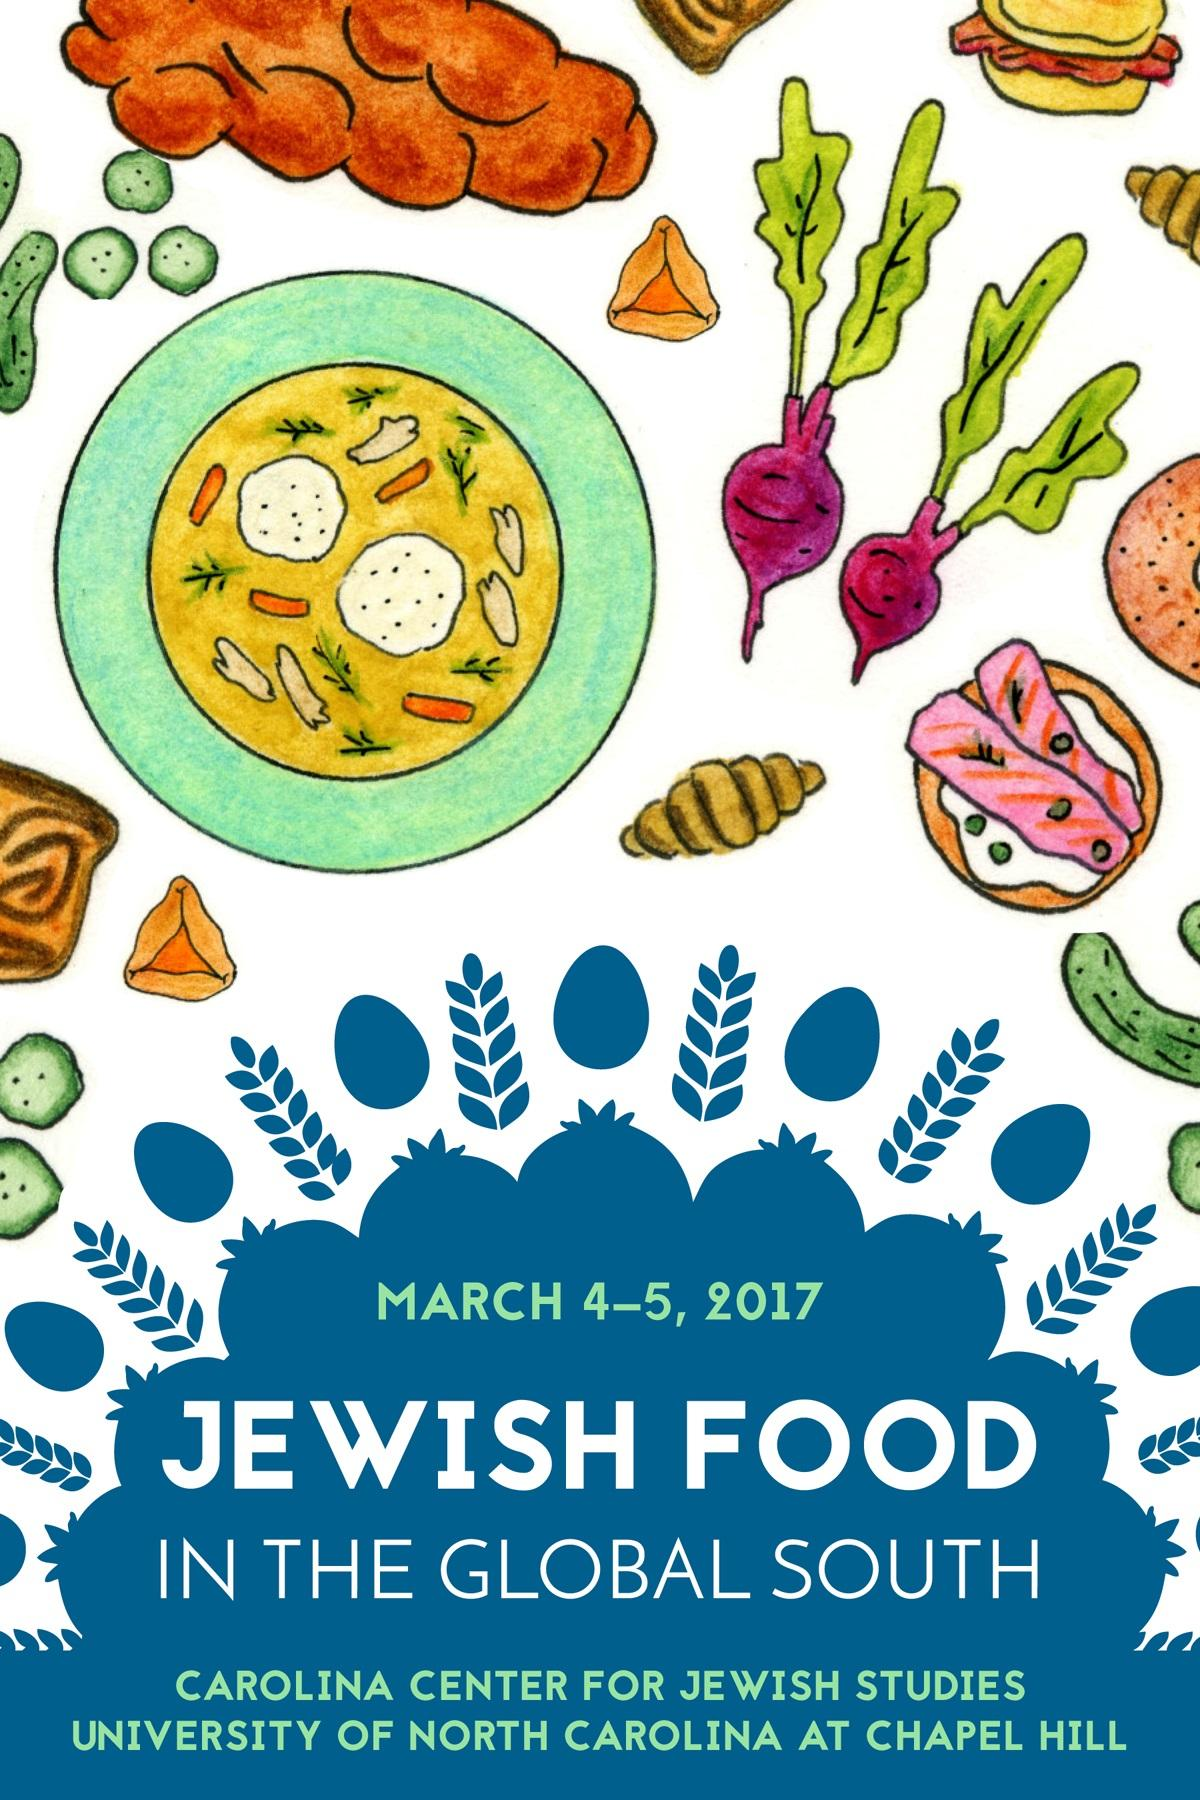 How South Shaped Jewish Cuisine